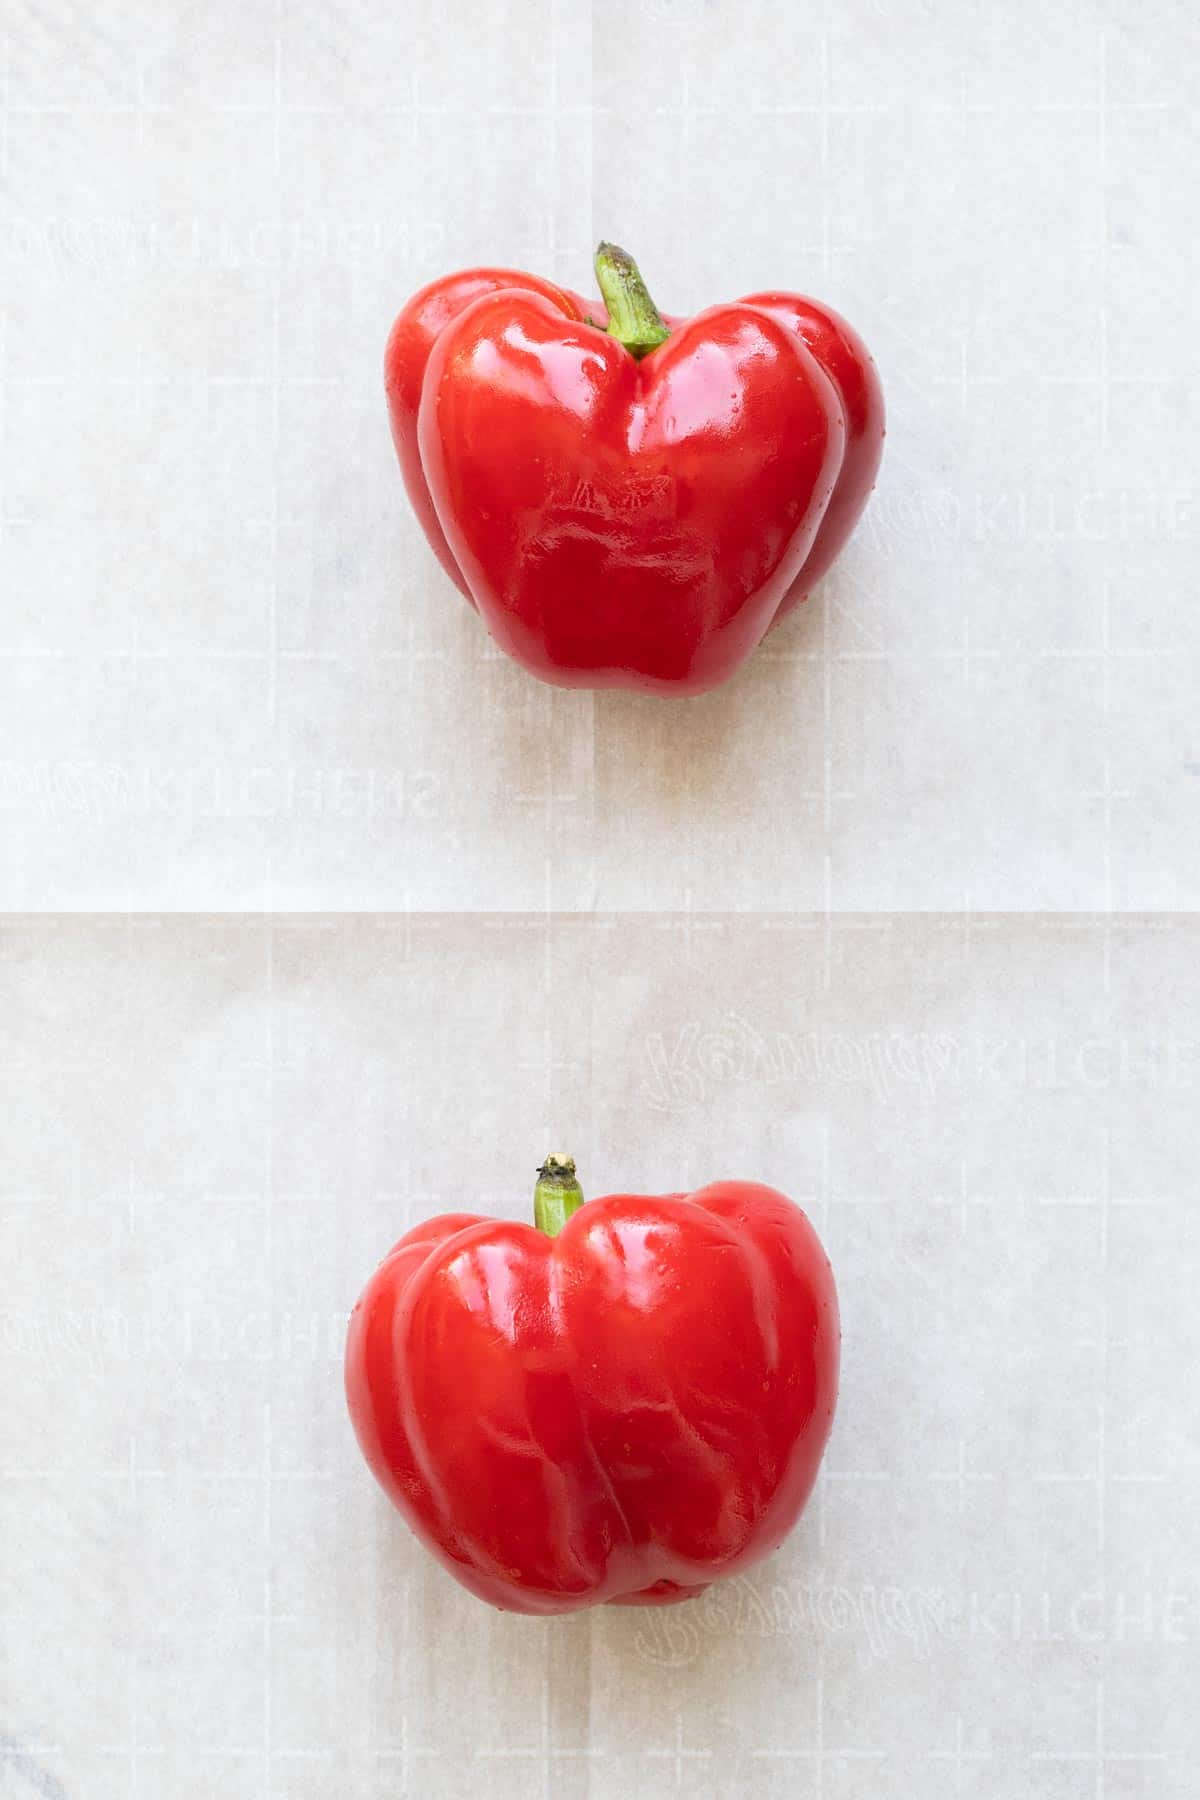 Two red peppers on a sheet of parhcment